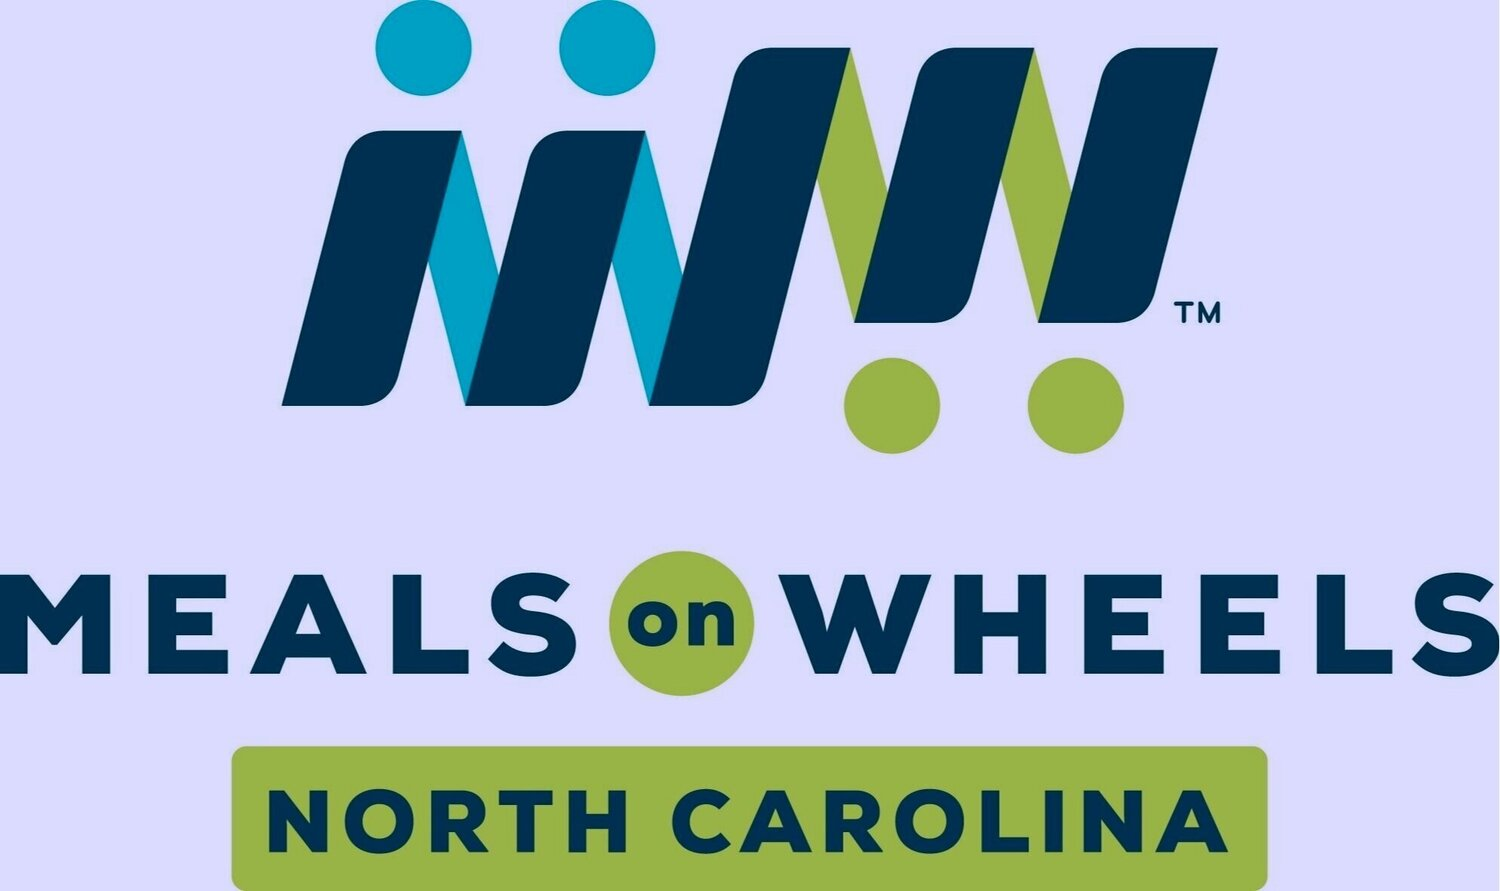 Meals on Wheels Association of North Carolina